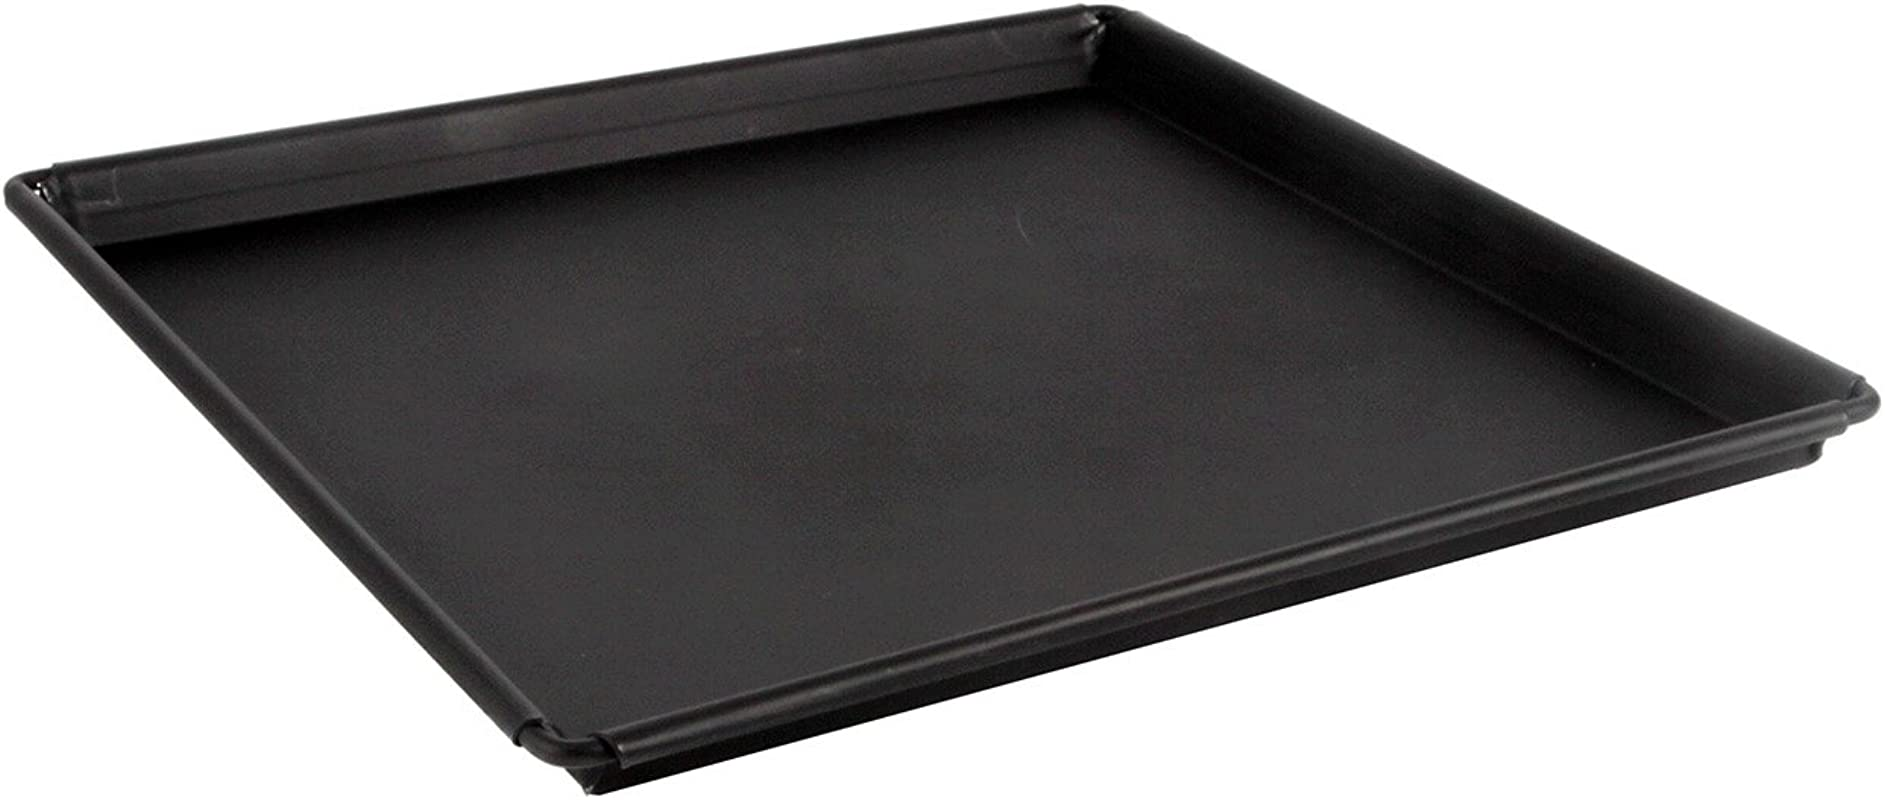 Allied Metal BB1212 Sicilian Non Stick Tapered Pizza Pan 12 By 1 Inch